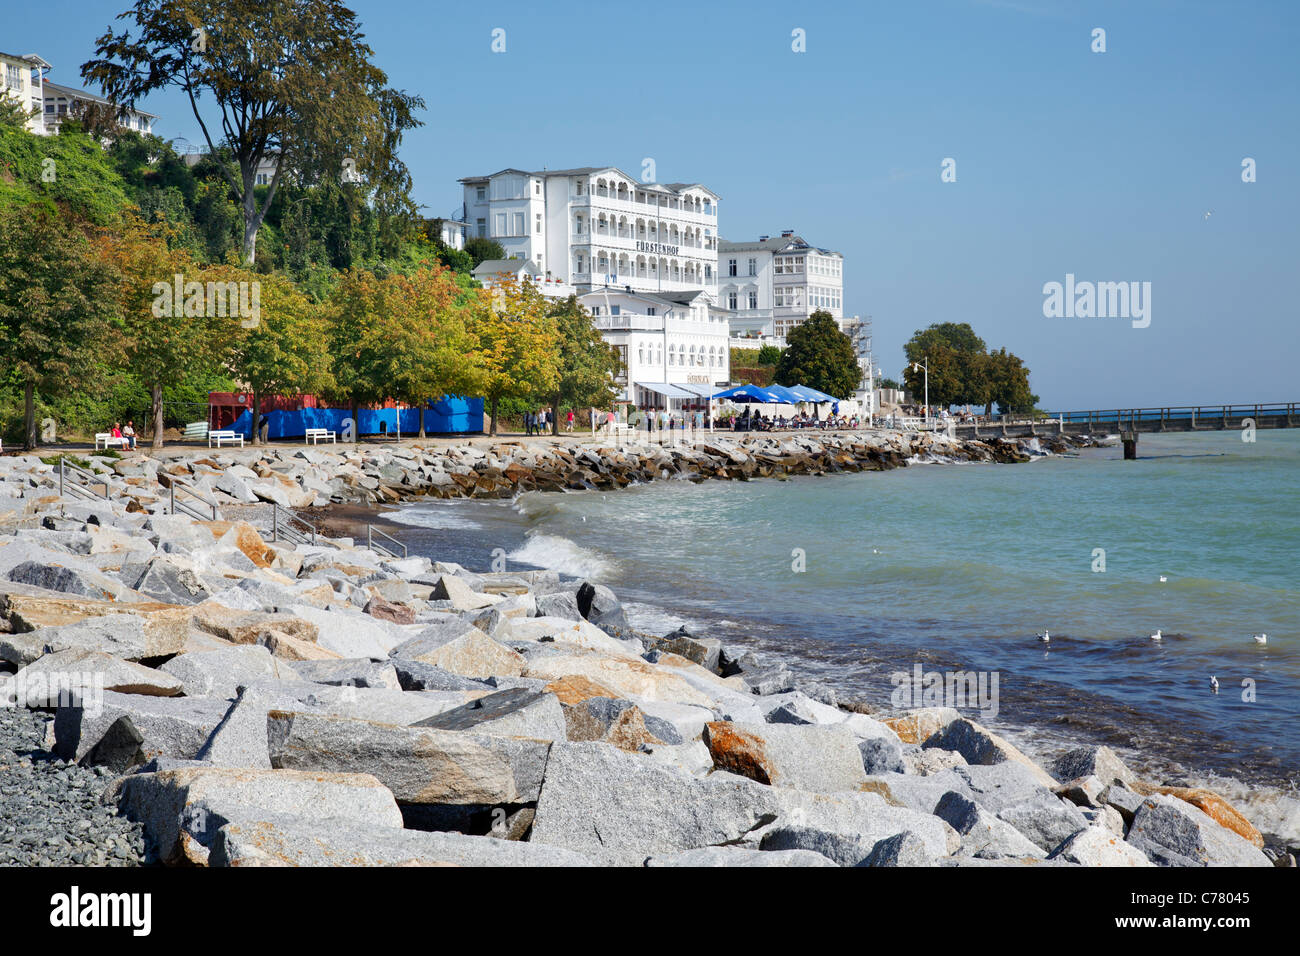 Beach Promenade and Appartment hotel Fuerstenhof, Sassnitz, Ruegen, Mecklenburg Vorpommern, Germany Stock Photo